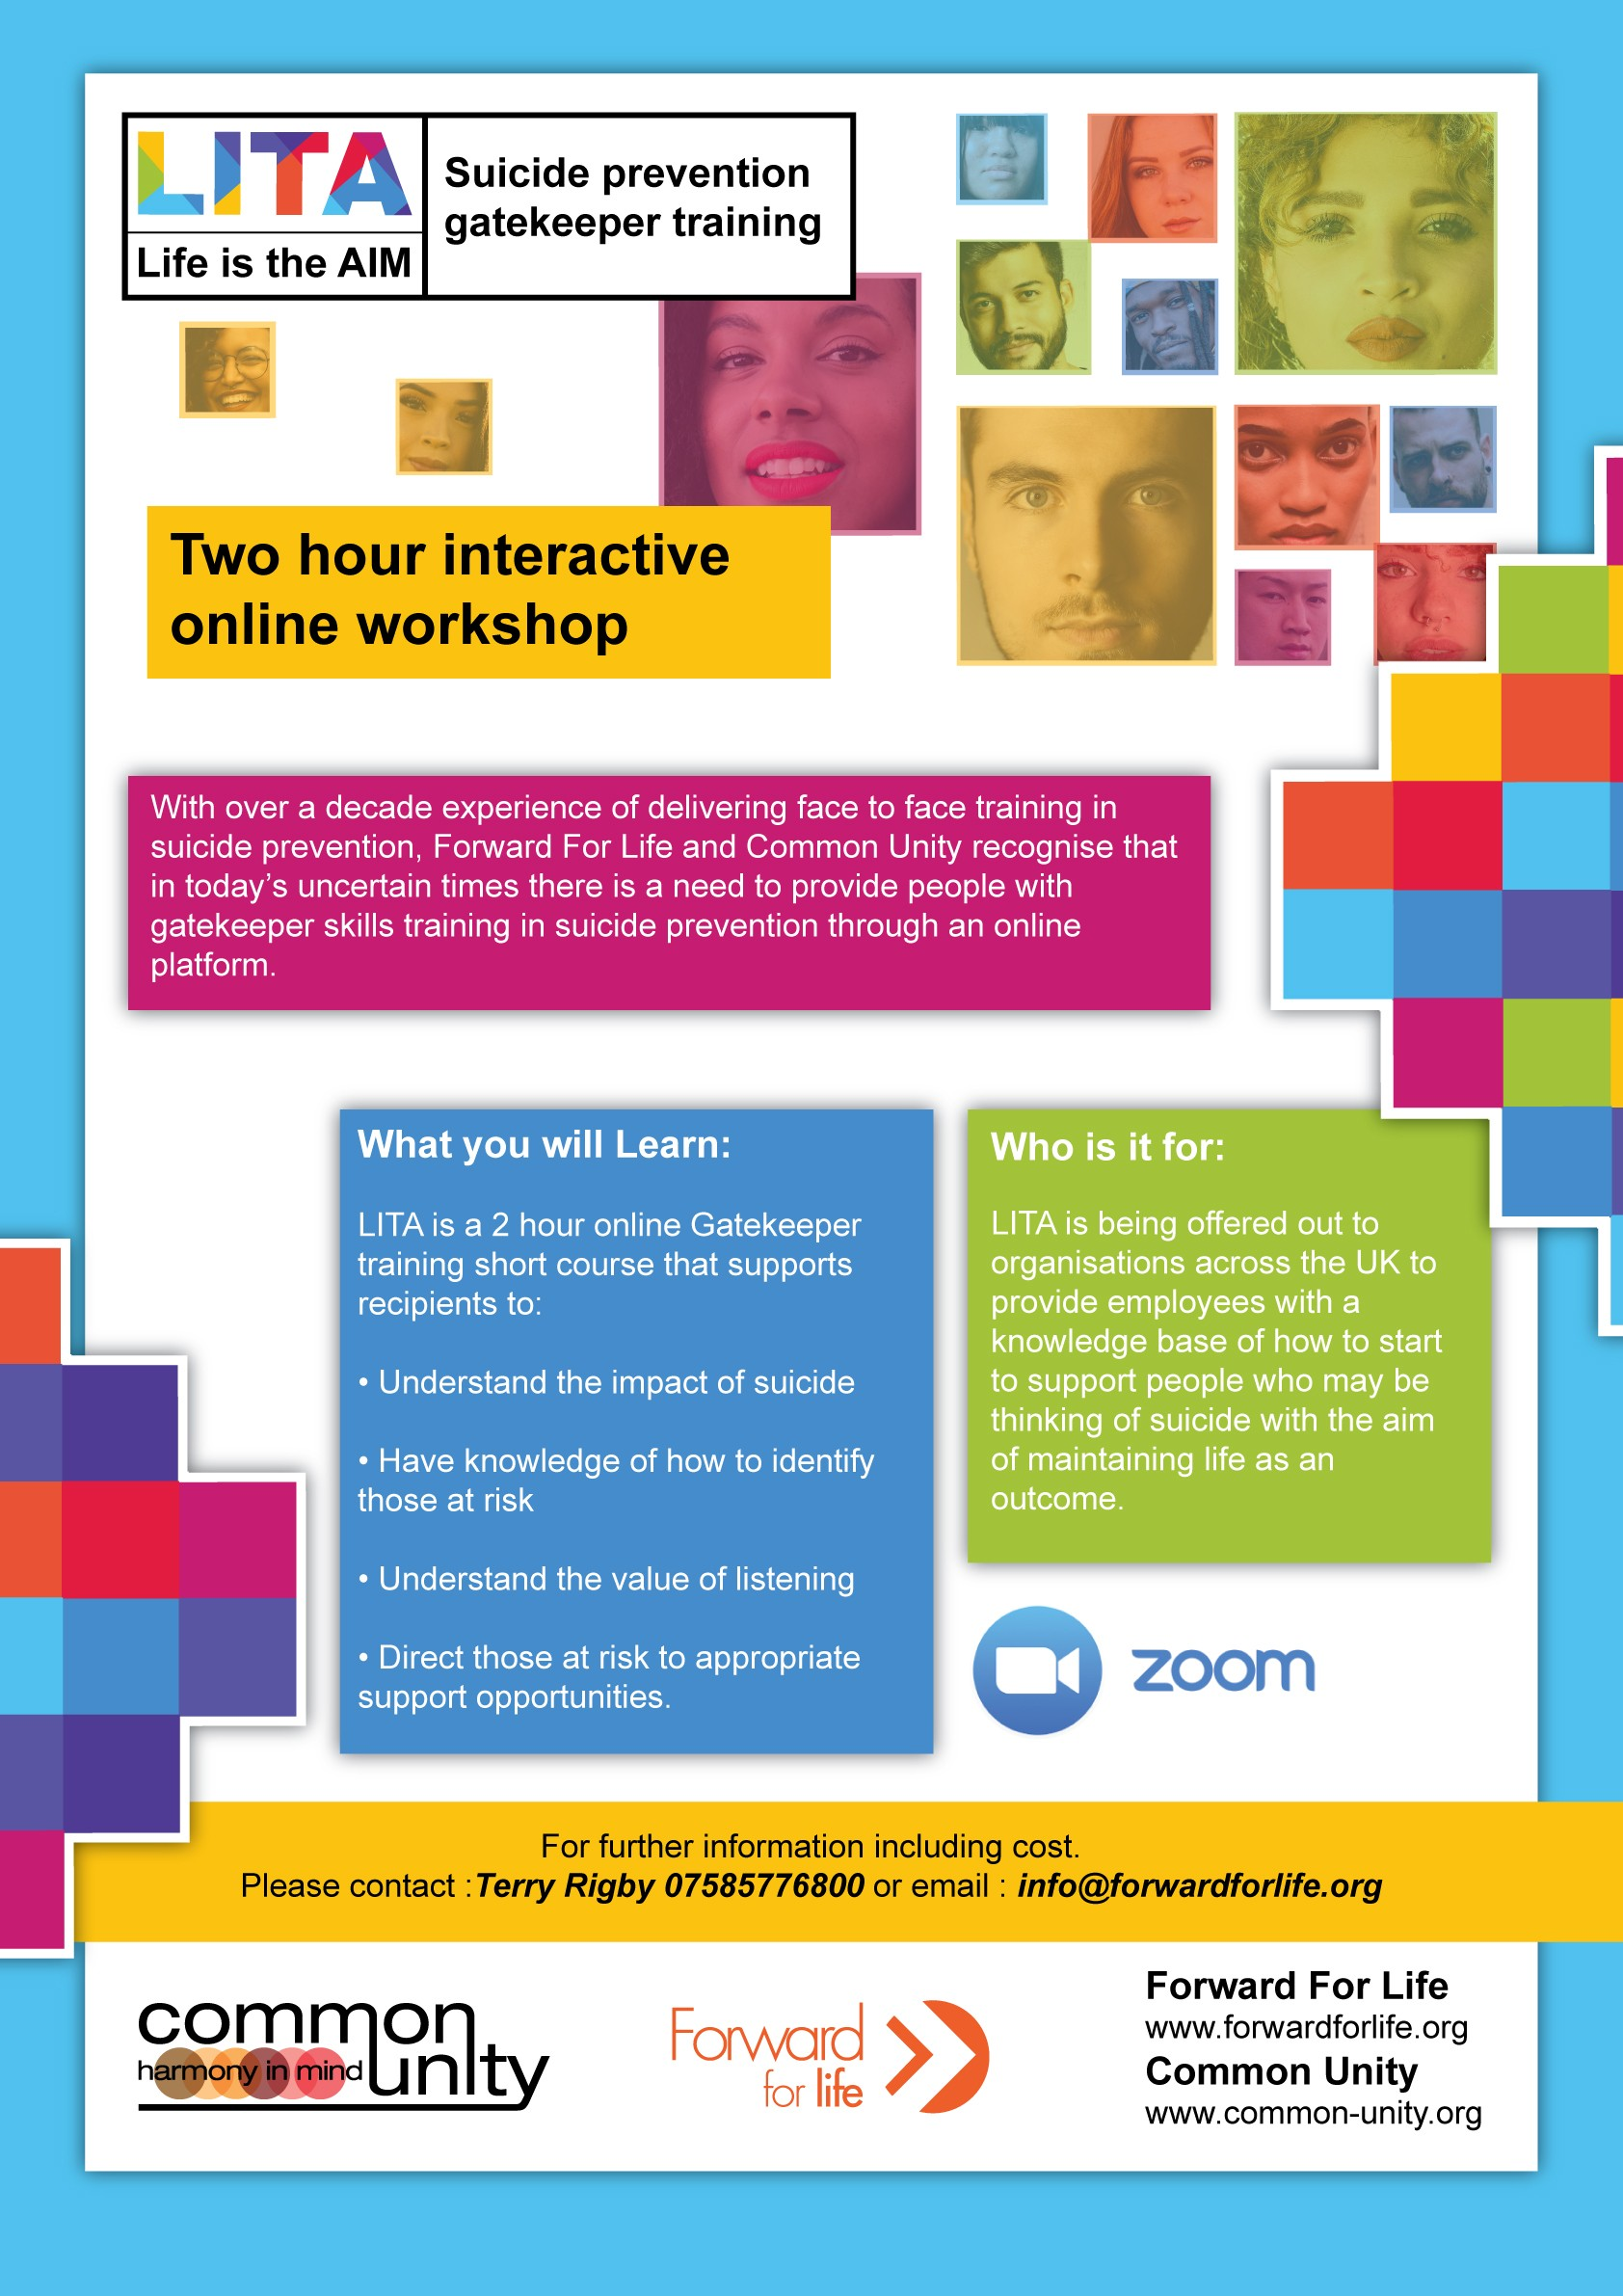 Introducing LITA our two hour interactive online workshop